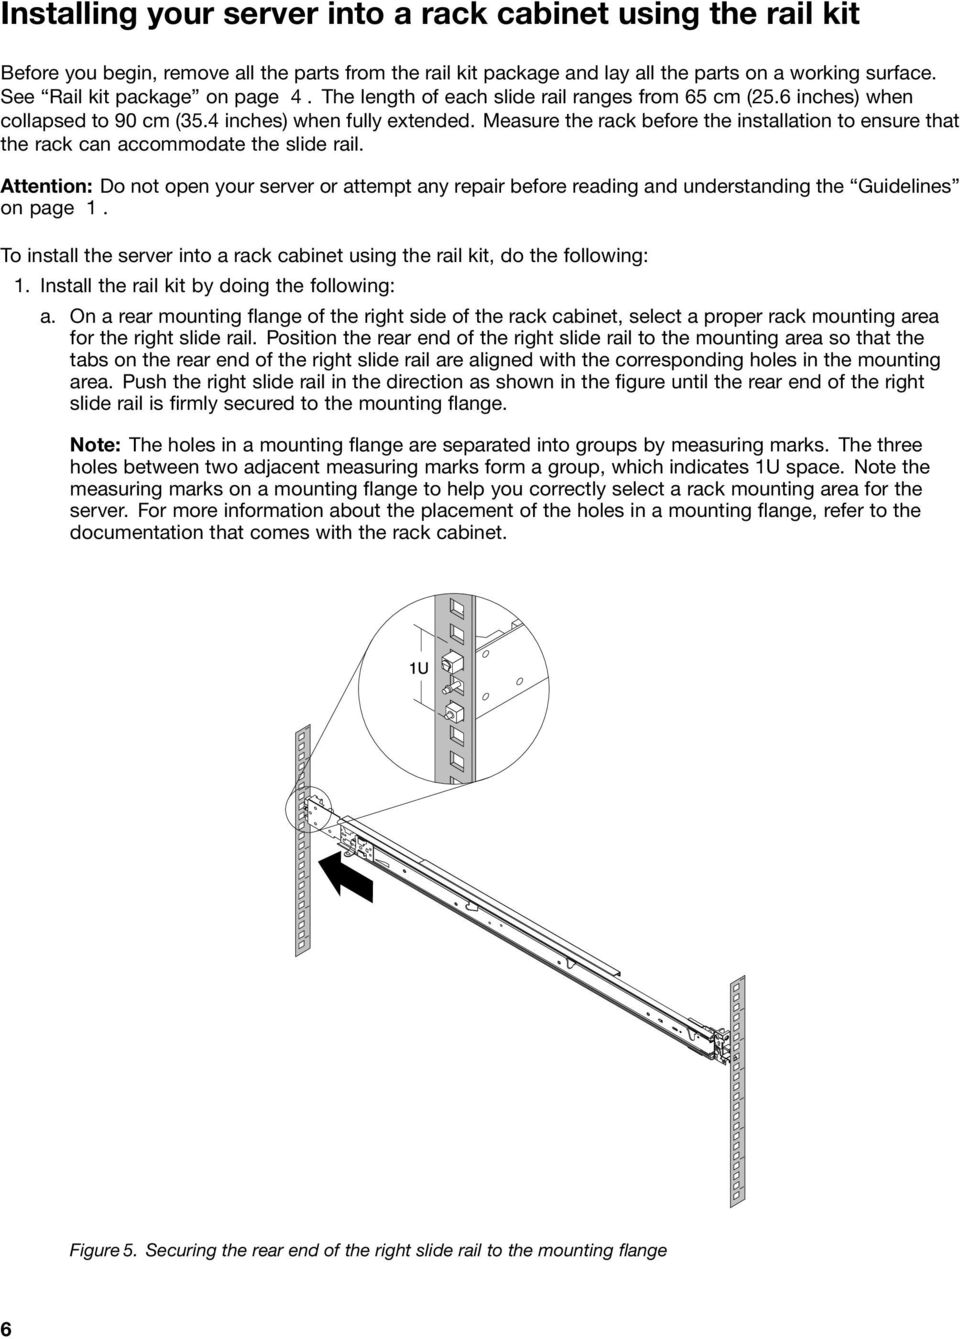 Measure the rack before the installation to ensure that the rack can accommodate the slide rail.